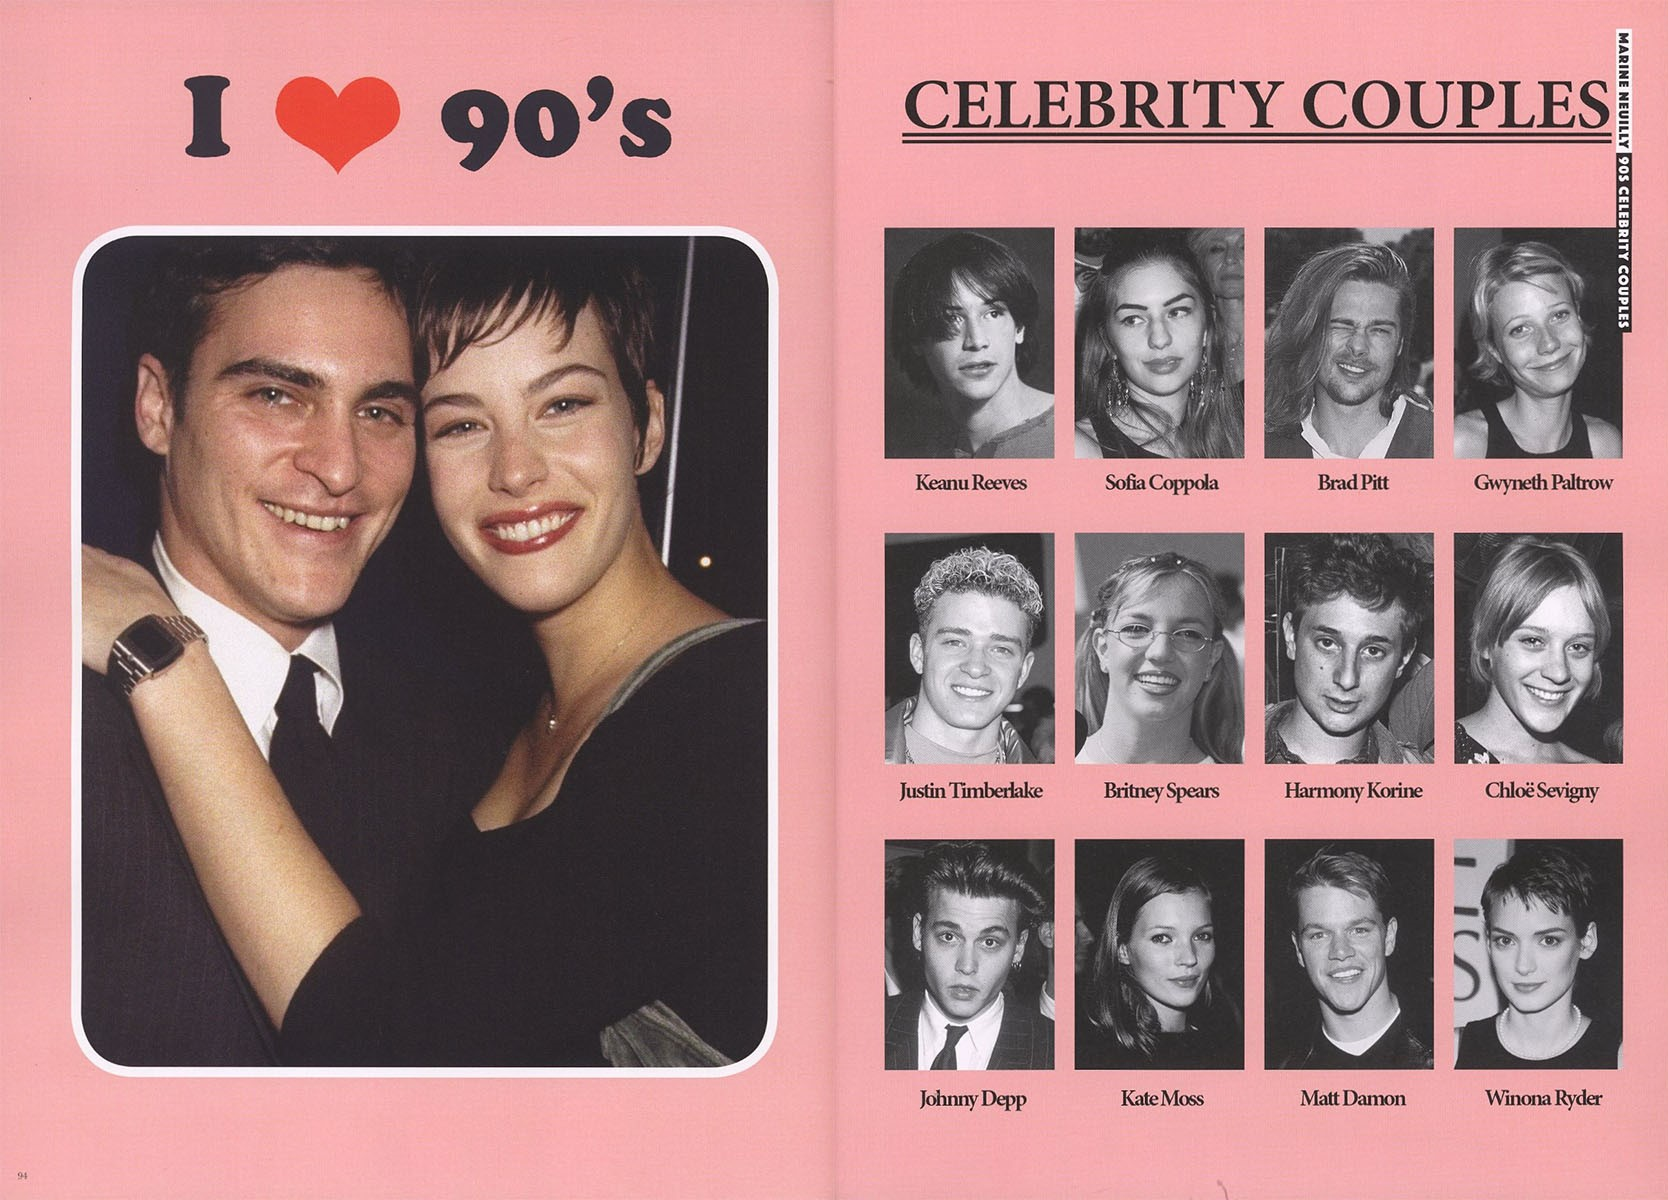 MARINE NEUILLY | 90S CELEBRITY COUPLES | FANPAGES | ISSUE 2